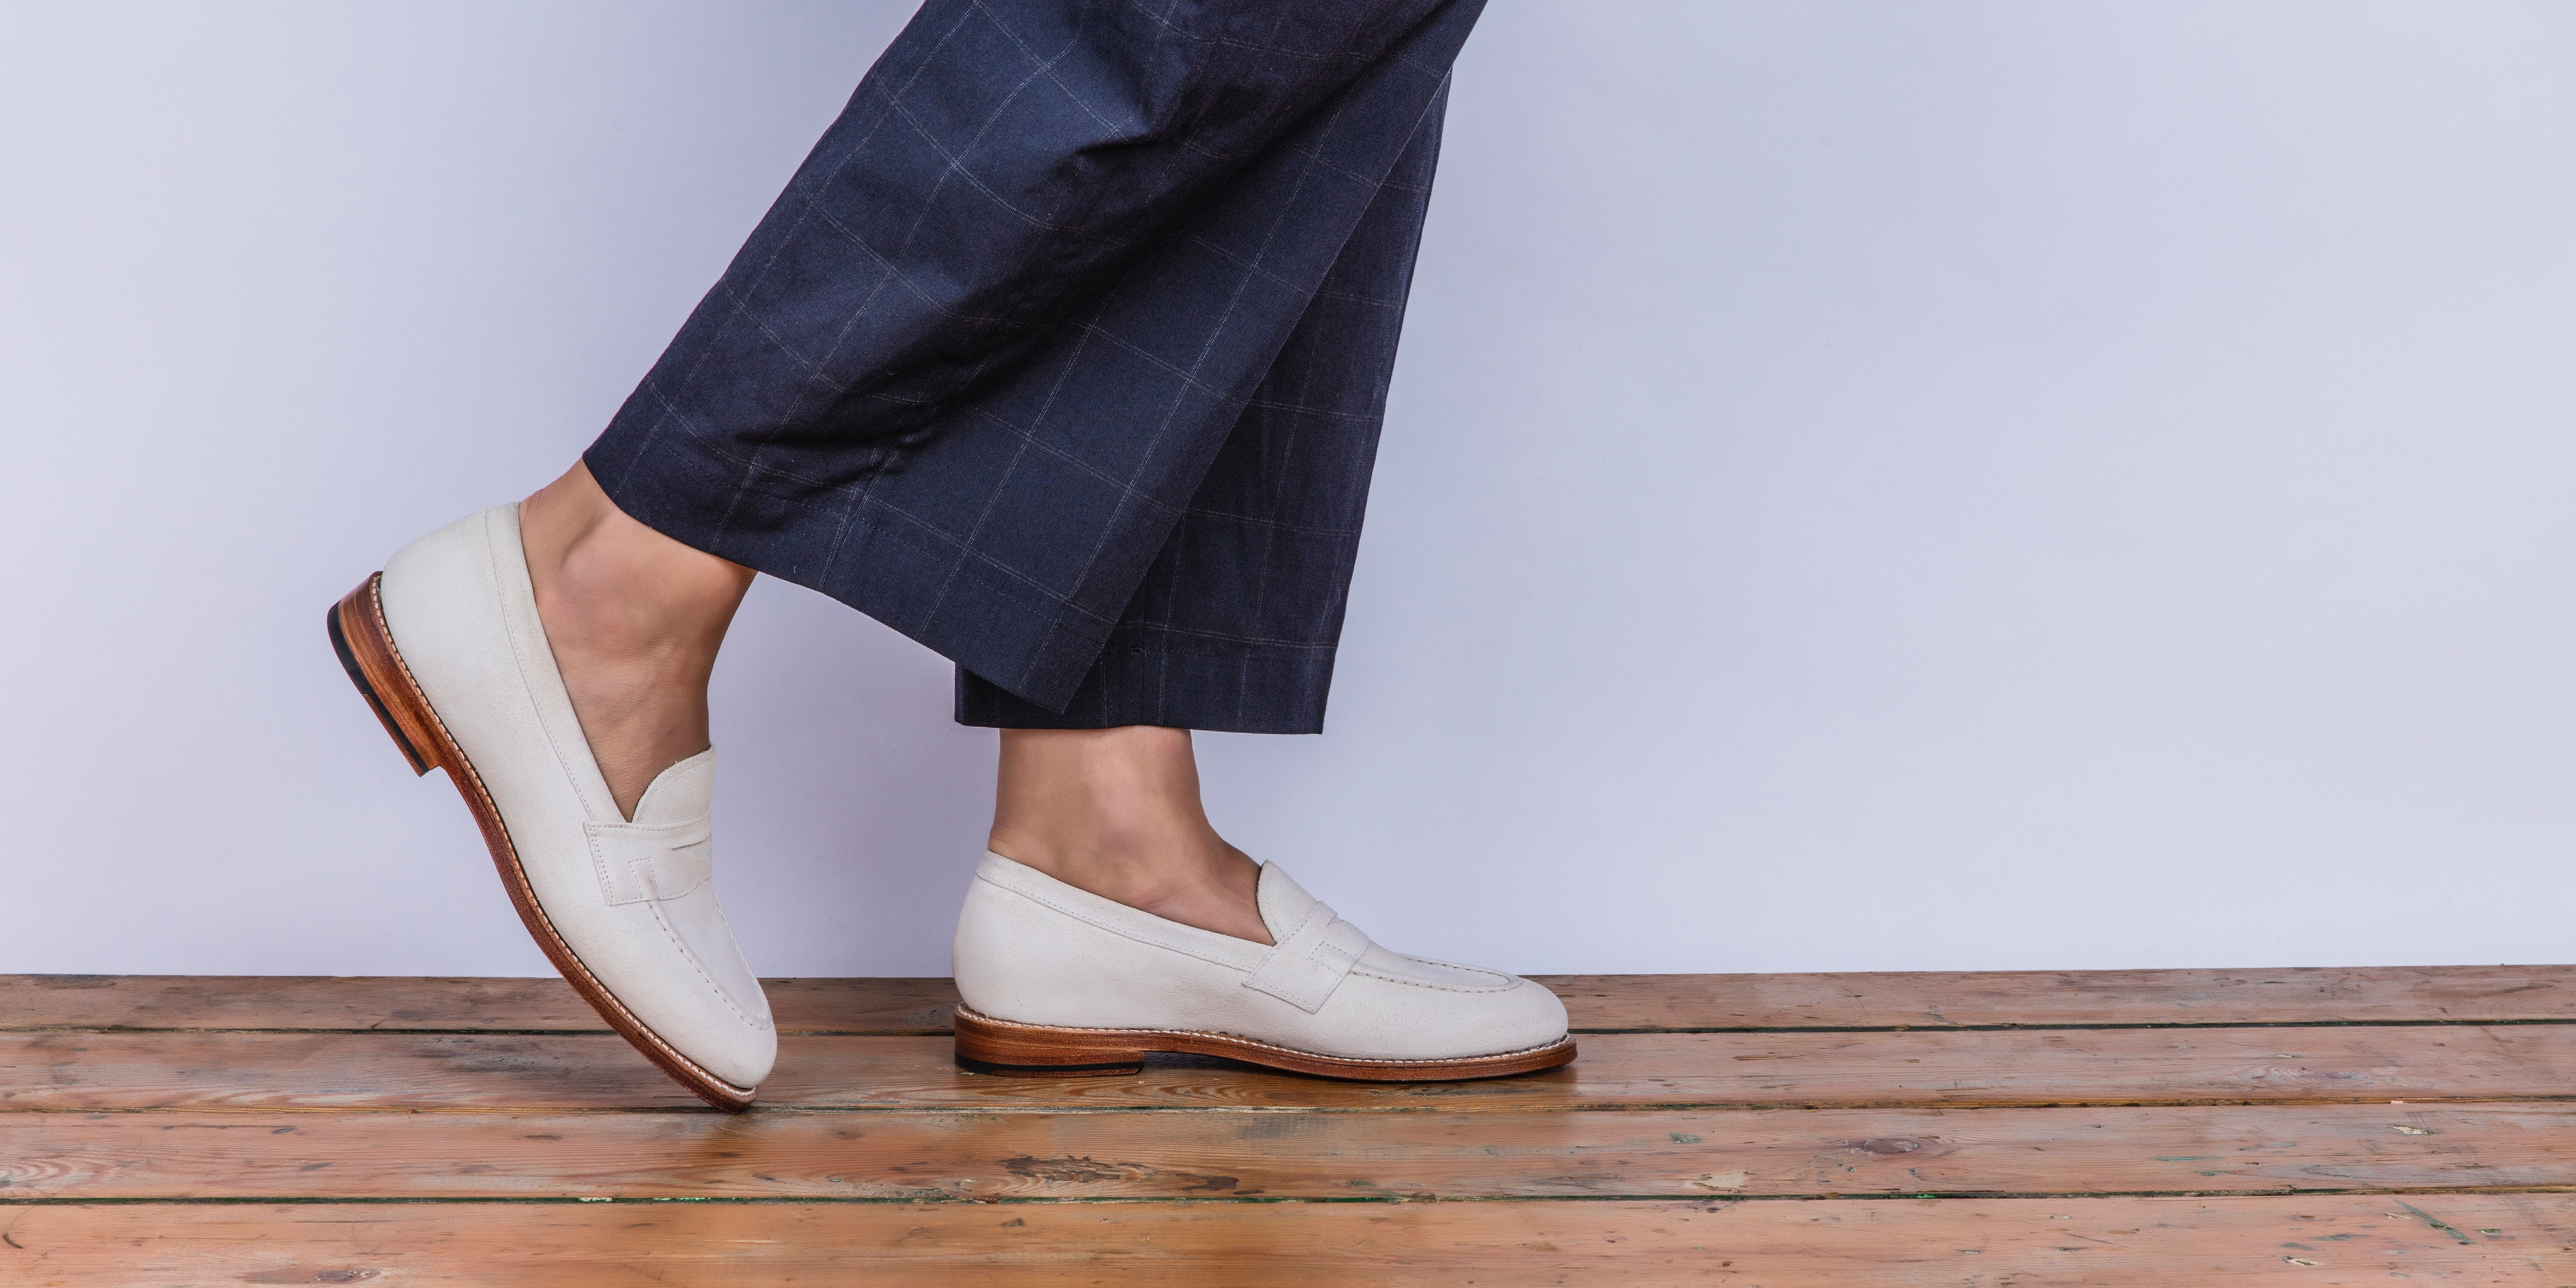 c1d9564651a Fleur in burnished white suede  grenson  girlsingrenson  grensongirls   womensbrogues  brogues